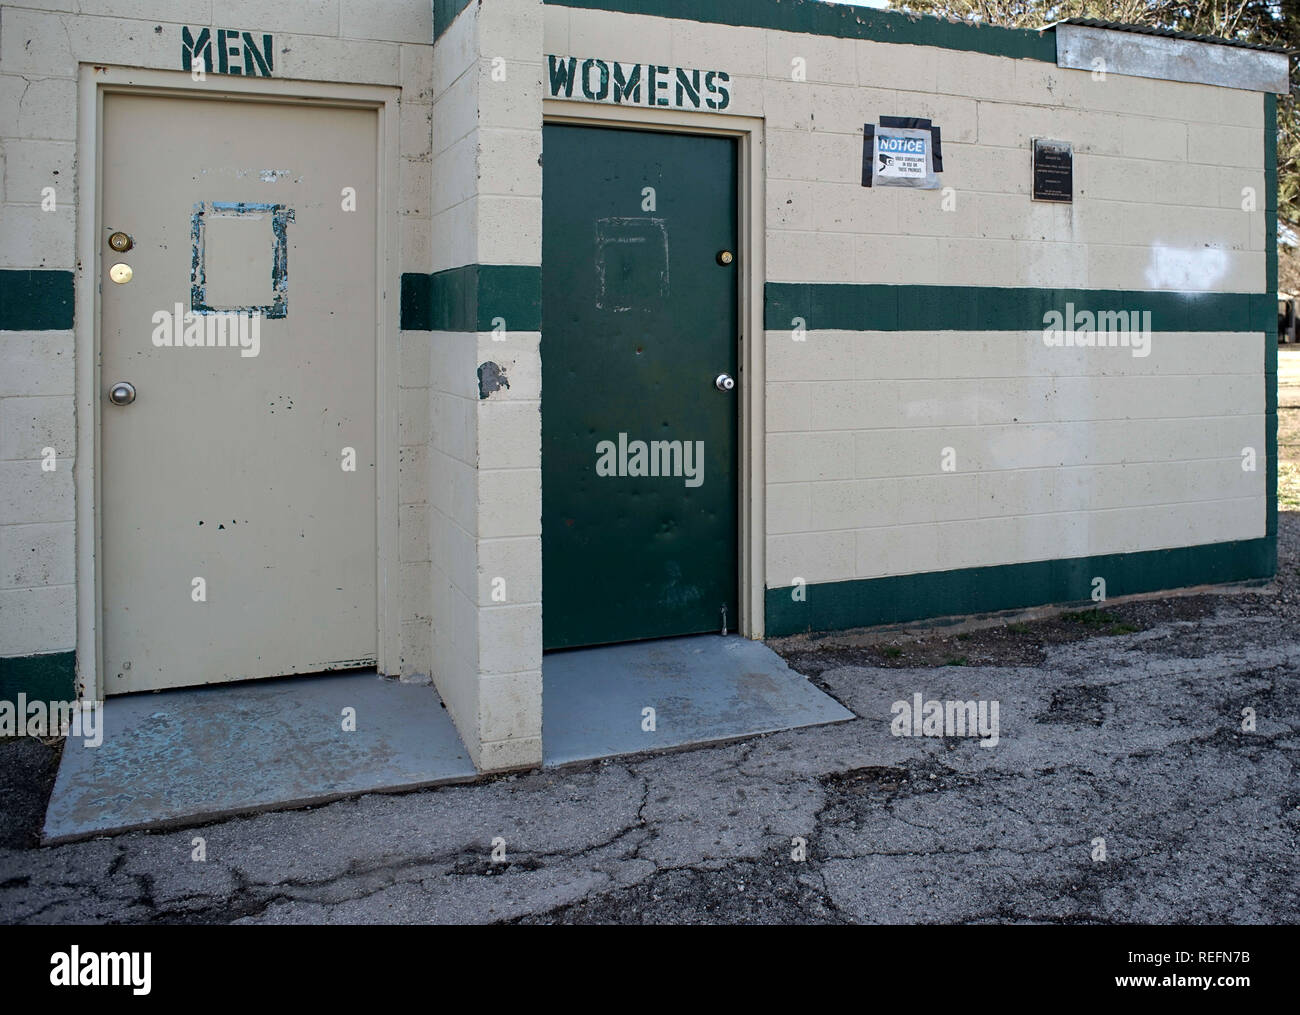 Public restrooms in Alpine, Texas, misspelling the plural of the word woman - Stock Image